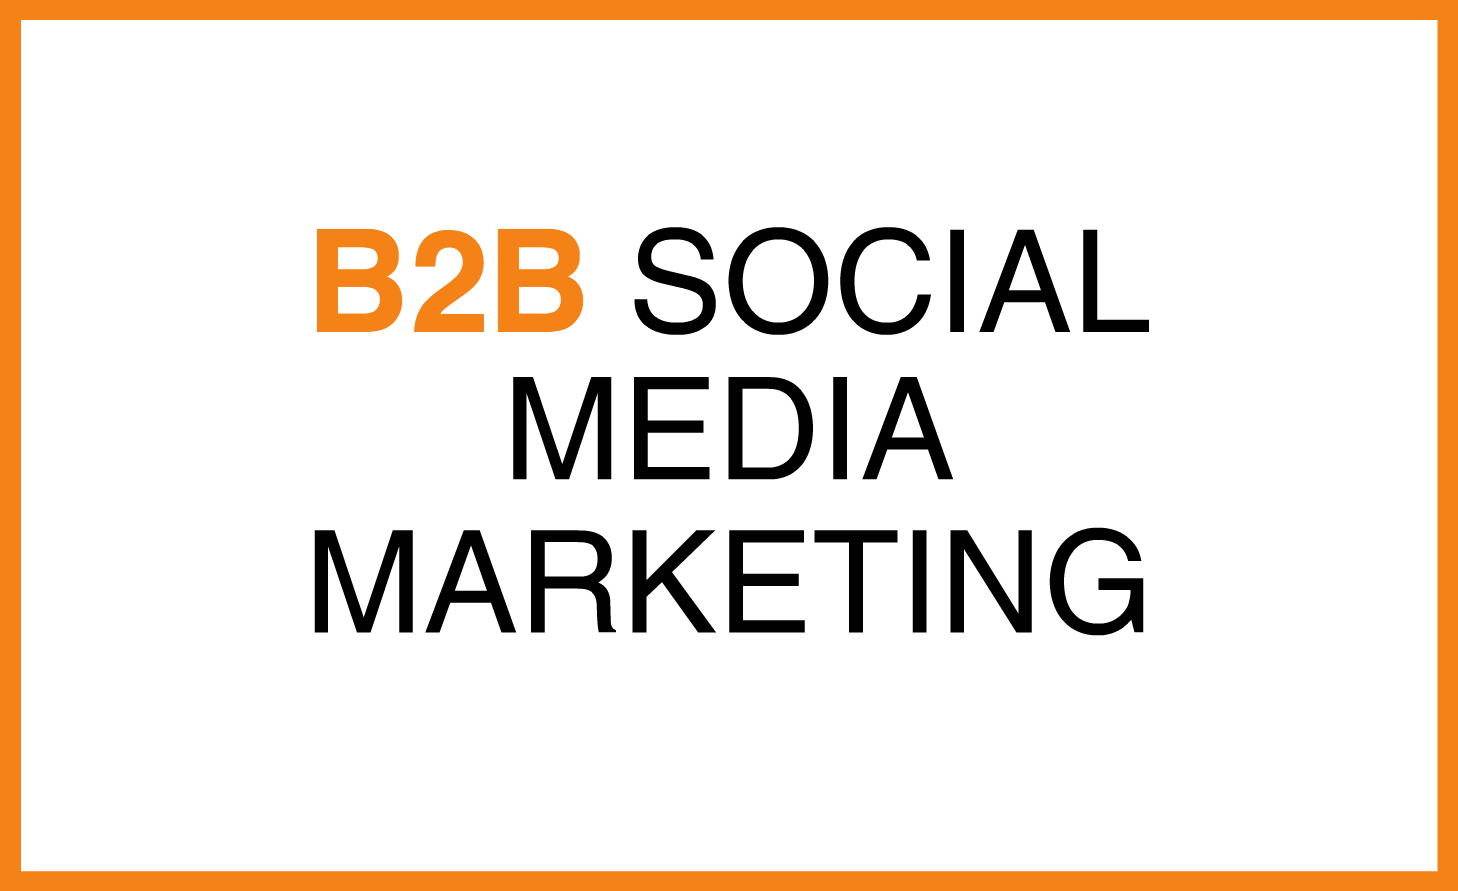 B2B social media marketing.png